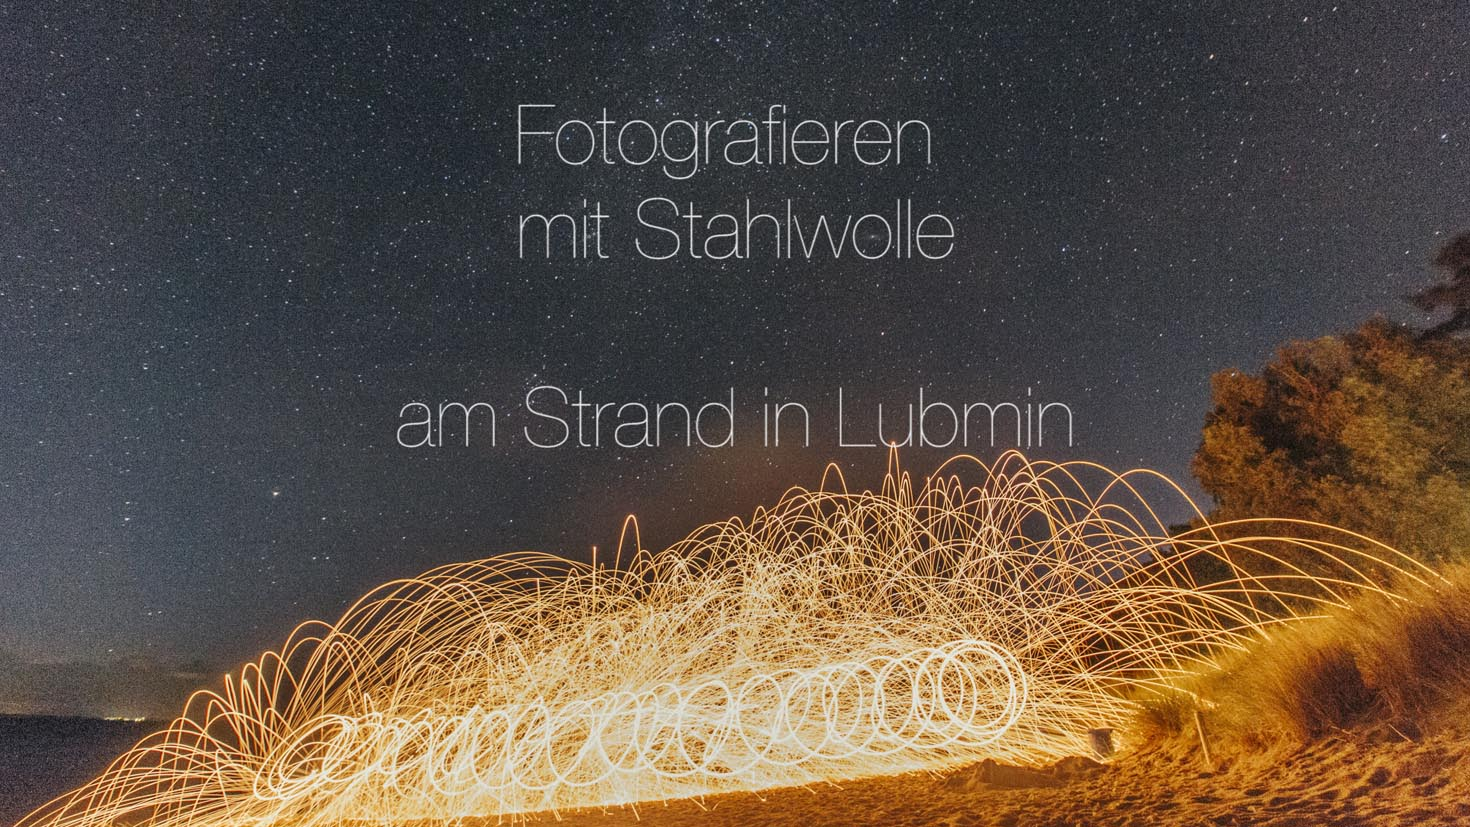 Fotografieren mit Stahlwolle in Lubmin am Strand